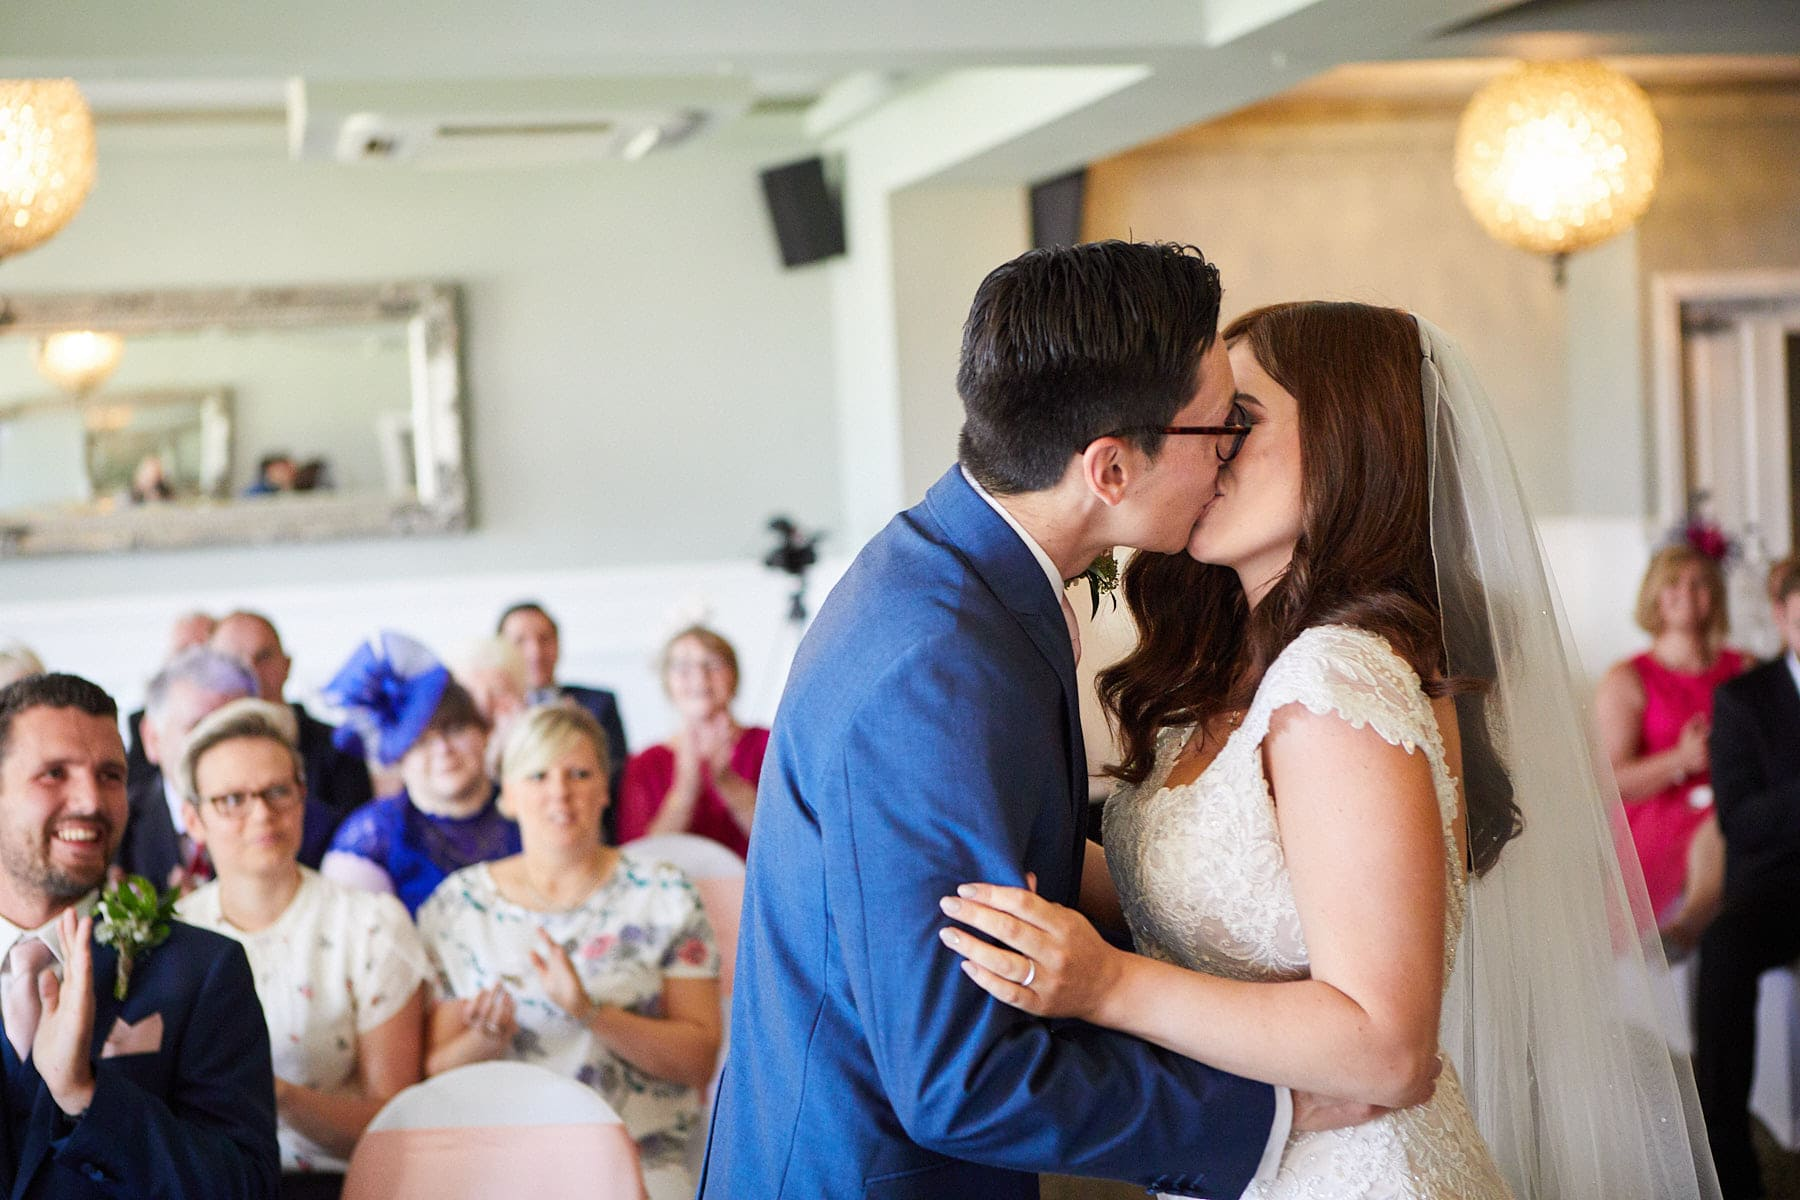 A couple kiss during her wedding at The Vine Hotel in Skegness